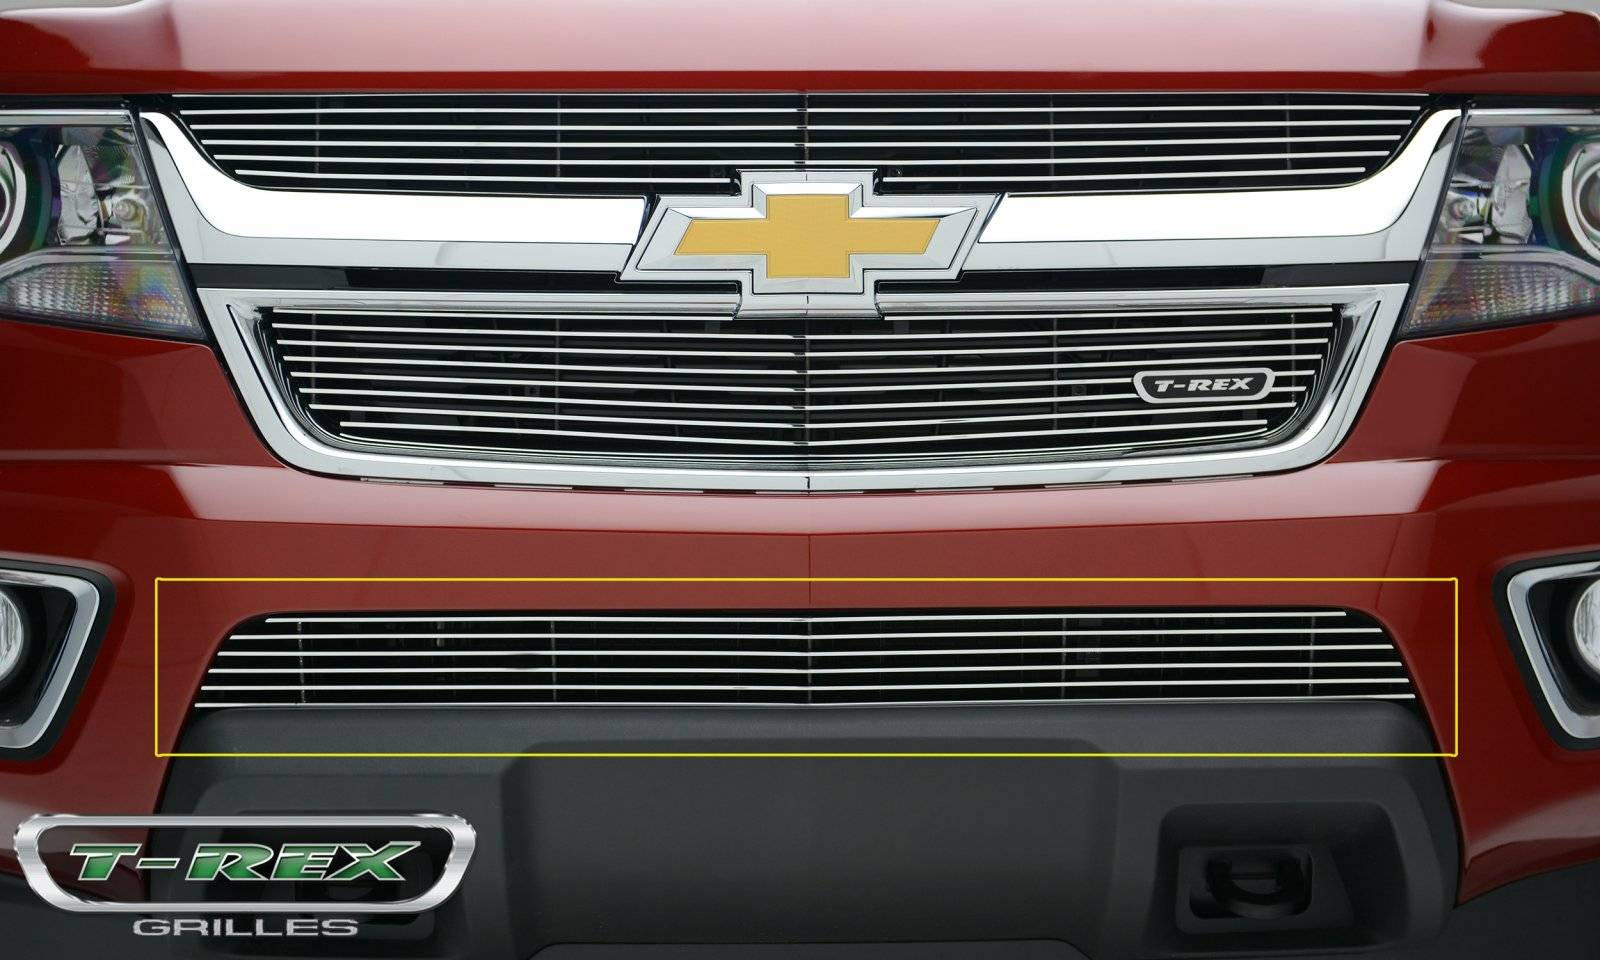 T-REX Chevrolet Colorado - Billet Series - Bumper Grille - Overlay with Polished Aluminum Face - Pt # 25267